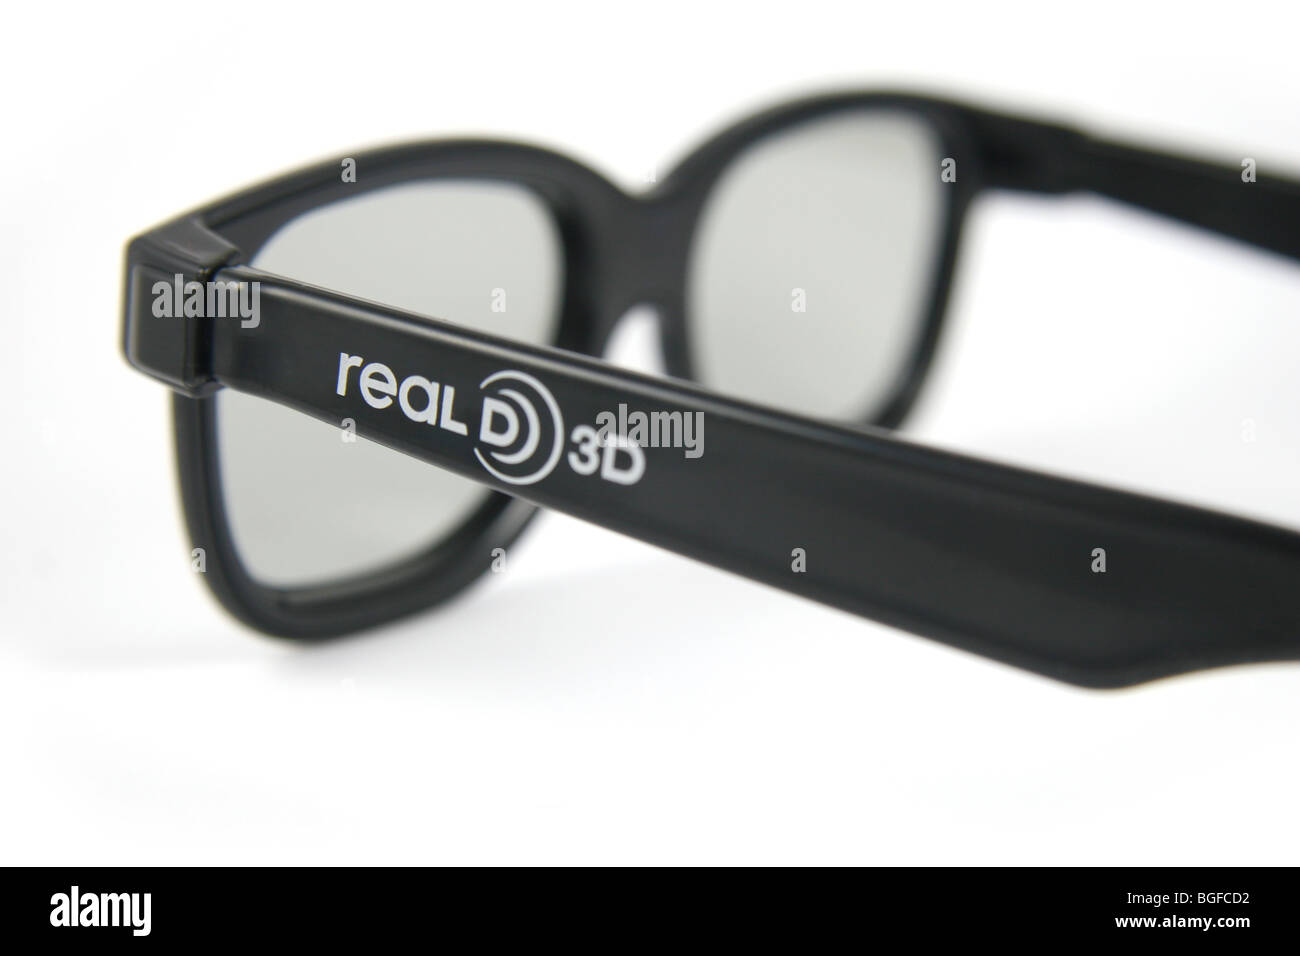 Real D 3-D glasses, used to view James Cameron's Avatar. - Stock Image